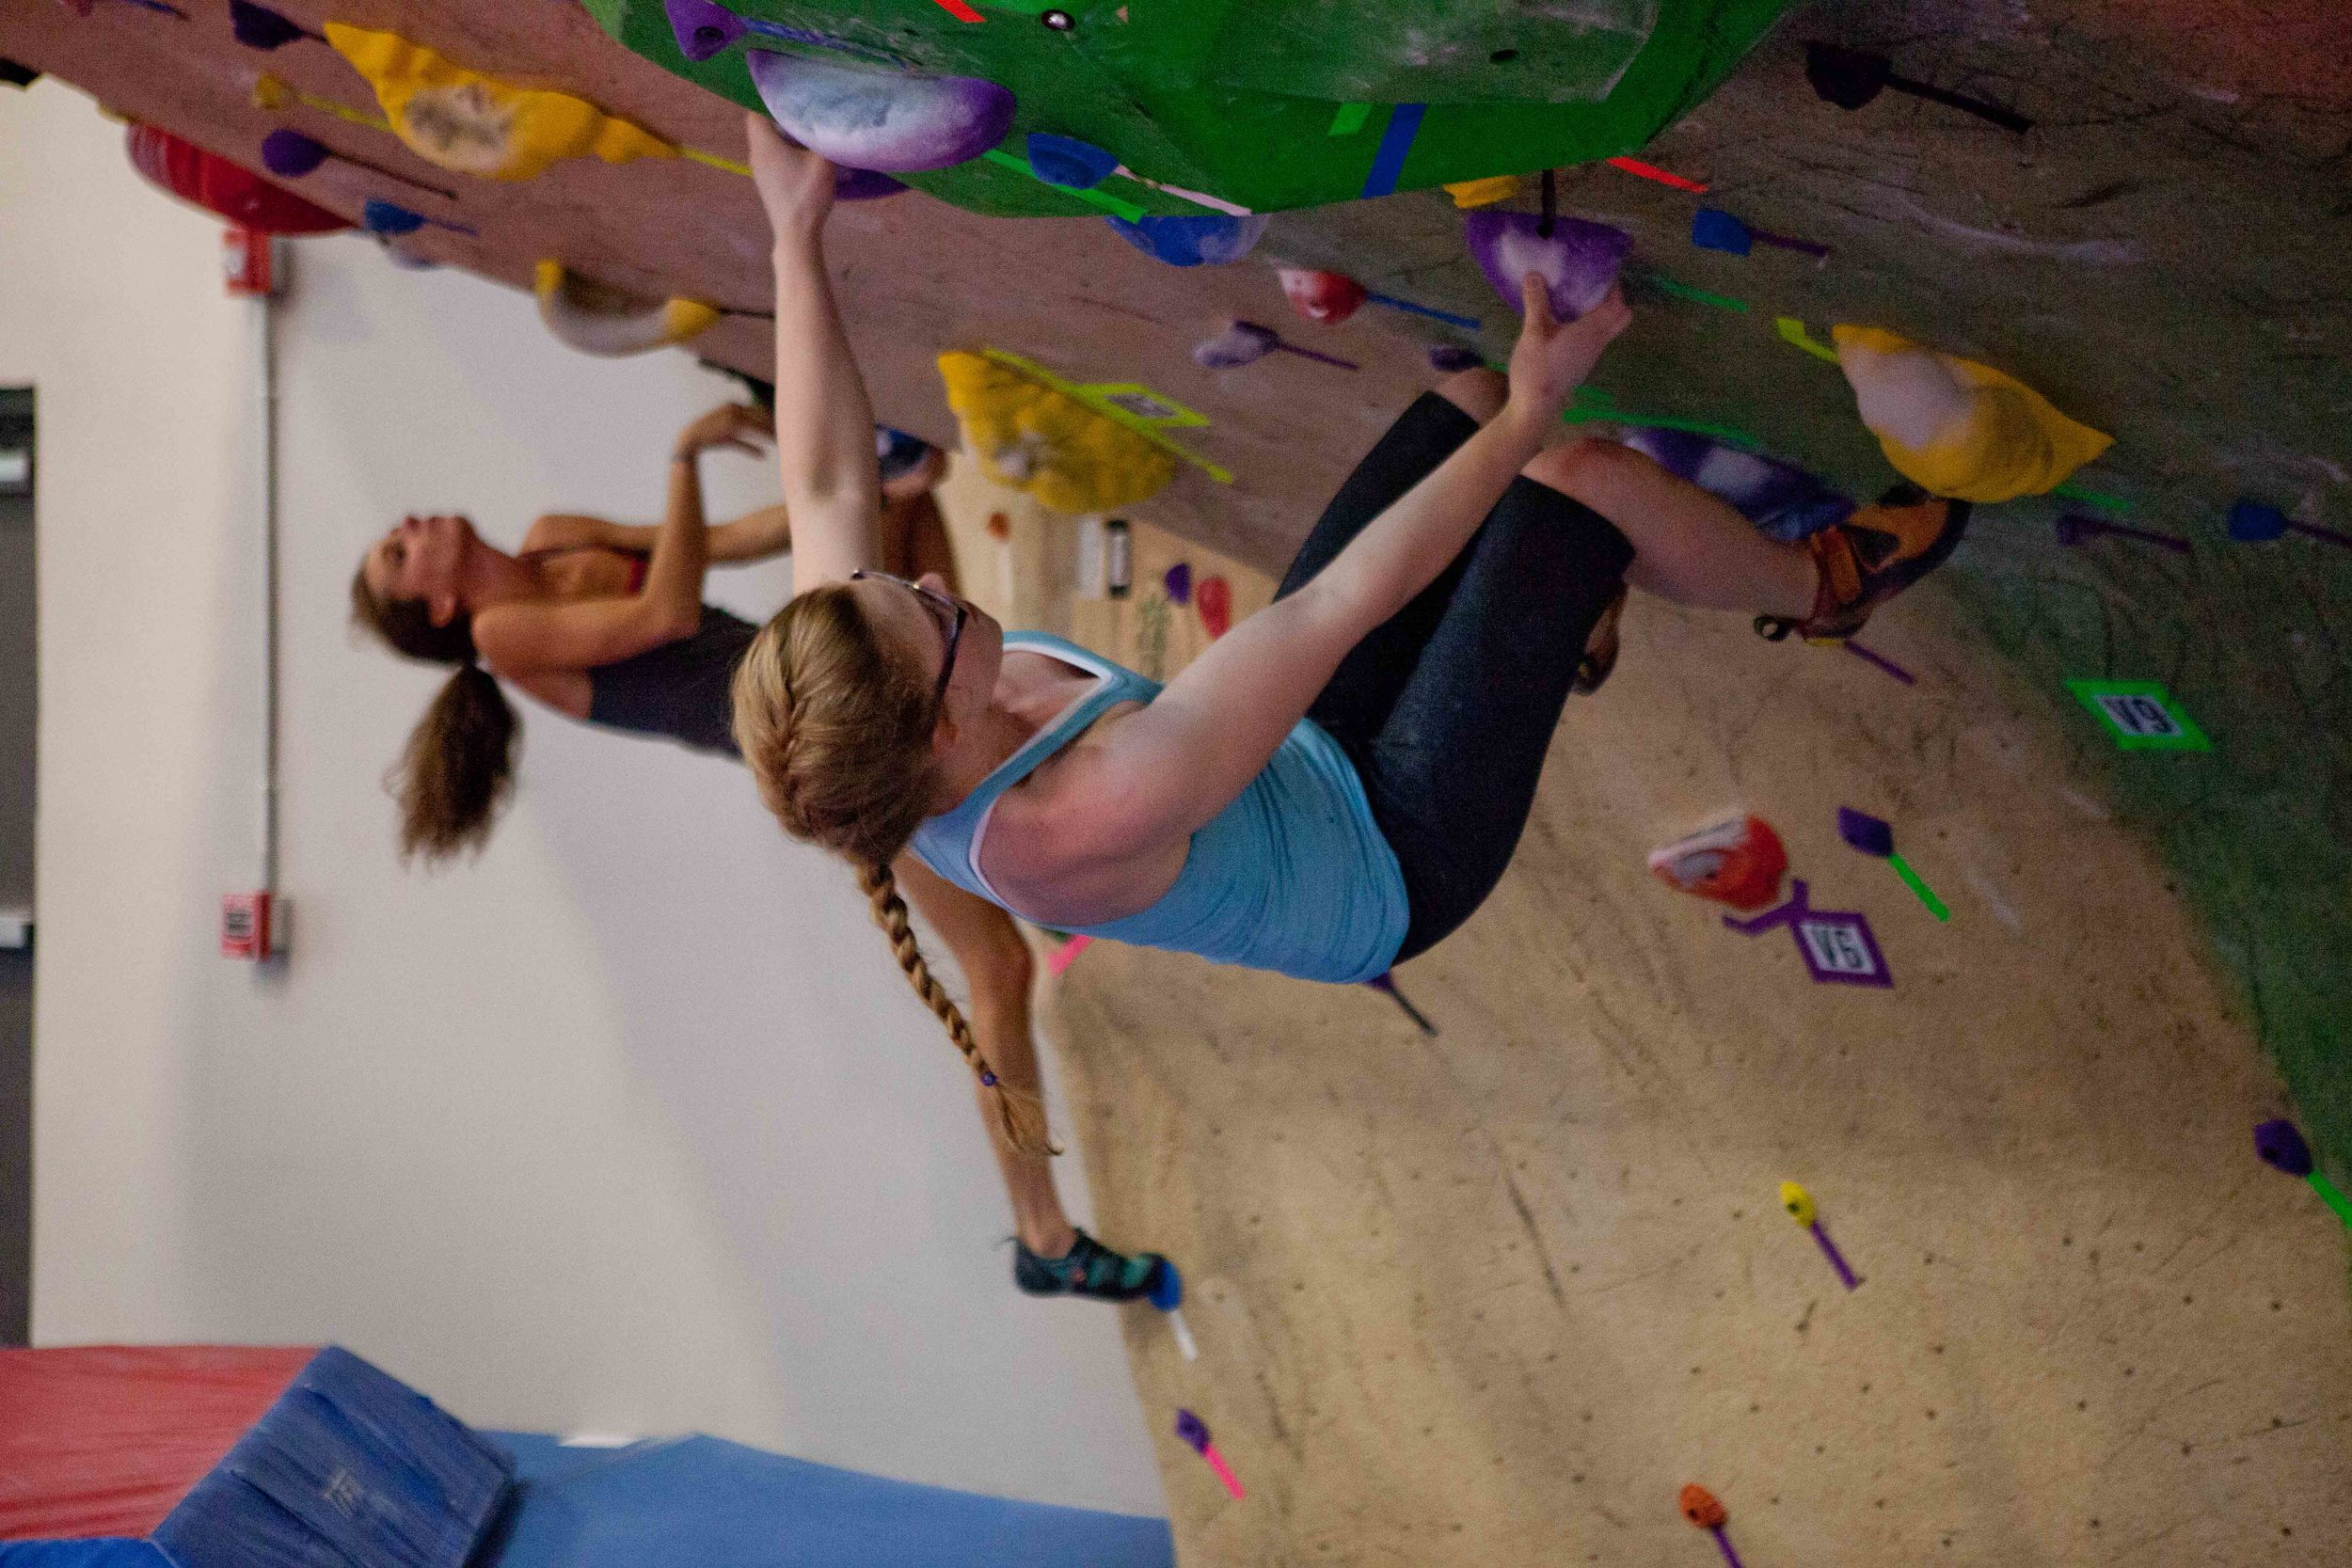 2013_08_11 Andrea climbing photos-127-9.jpg